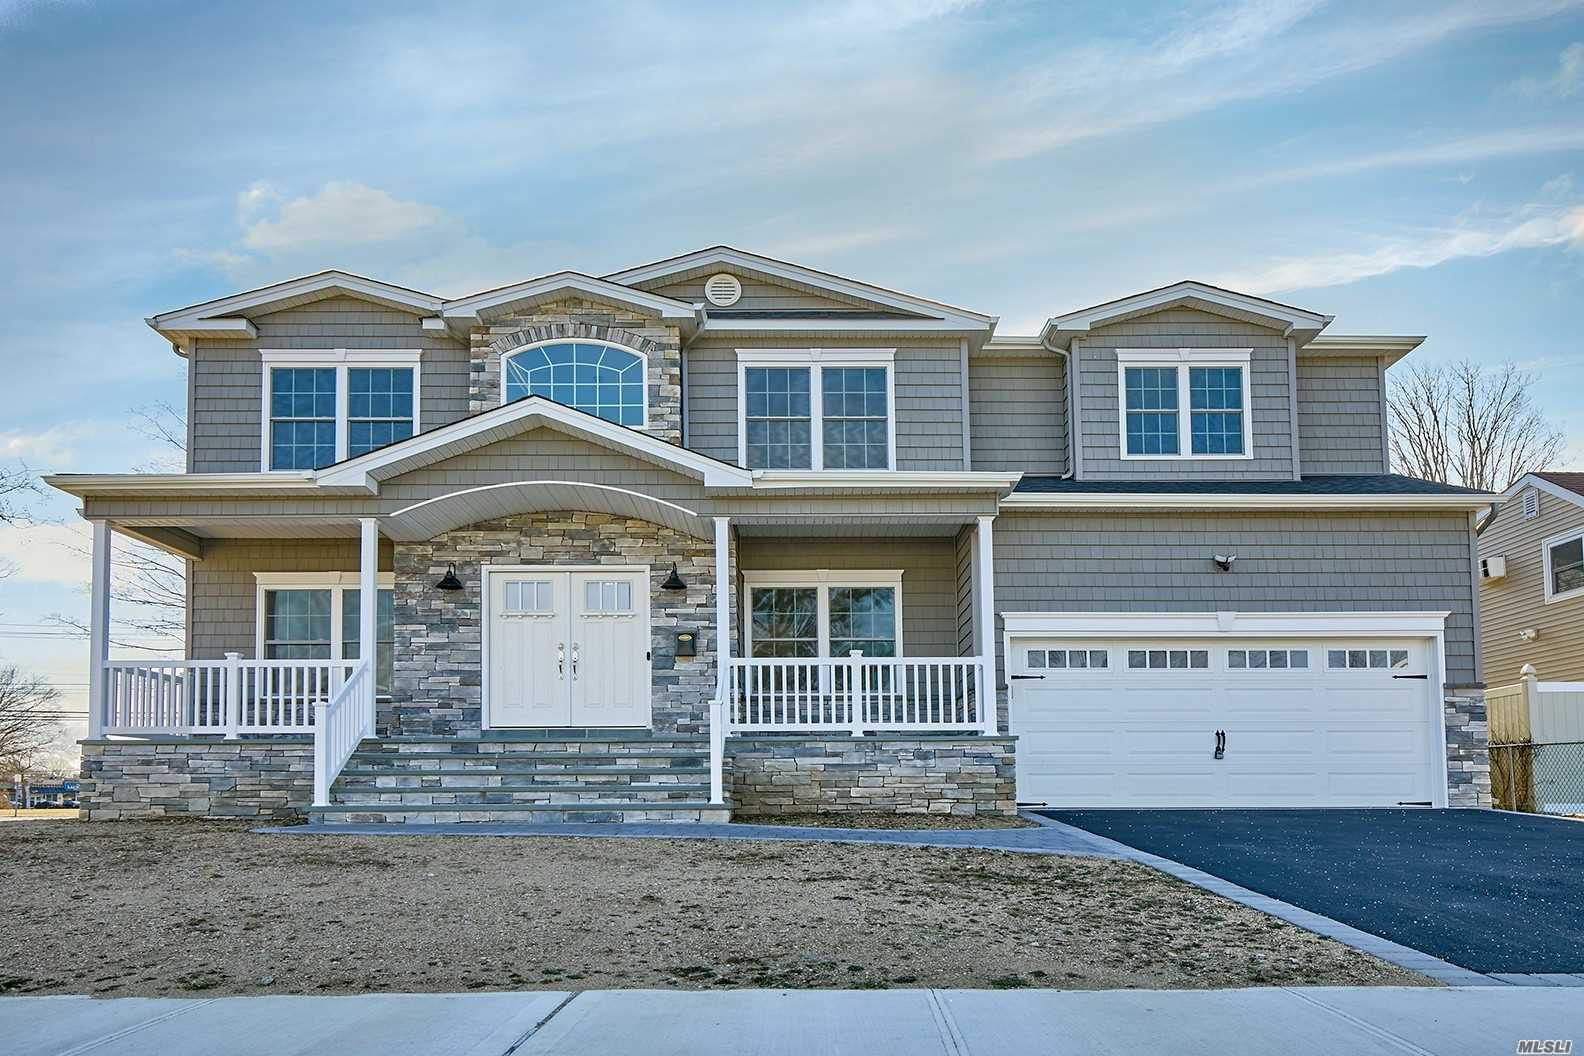 Brand New C-Hall Colonial Being Built On Big Prop On Private Cul-De-Sac Within 1st-Class Manetto Hills Area. *90% Complete!* Pics Are Of Similar Model Home By Same Reputable Bldr Of 25+ Years/350+ Houses. Home Boasts 3300 Total Sq Ft Of Open Floor Plan (+Bsmt) Expertly Designed & Finished W/The Utmost Quality Of Craftsmanship. Designer Baths, Custom Eat-In-Kit W/Granite Ctops+Prof Appls, Stunning Master Suite, Pella Wdws, Intricate Trimwork & Details, 1st Flr Bdrm/Office & F-Bath, 2-Car Gar, +More!